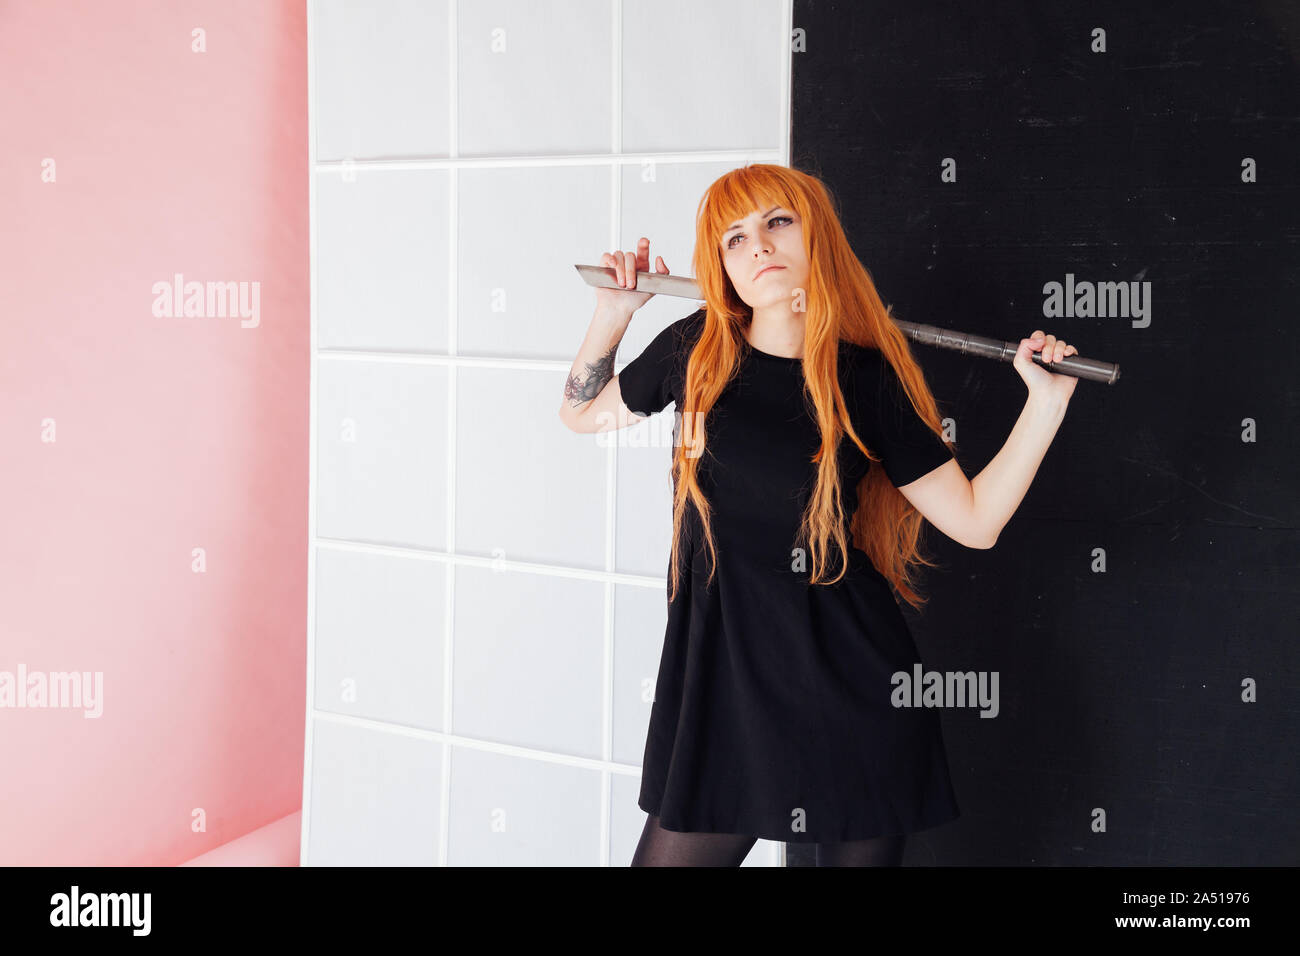 Woman Cosplayer Anime With Red Hair Holds A Japanese Sword Stock Photo Alamy